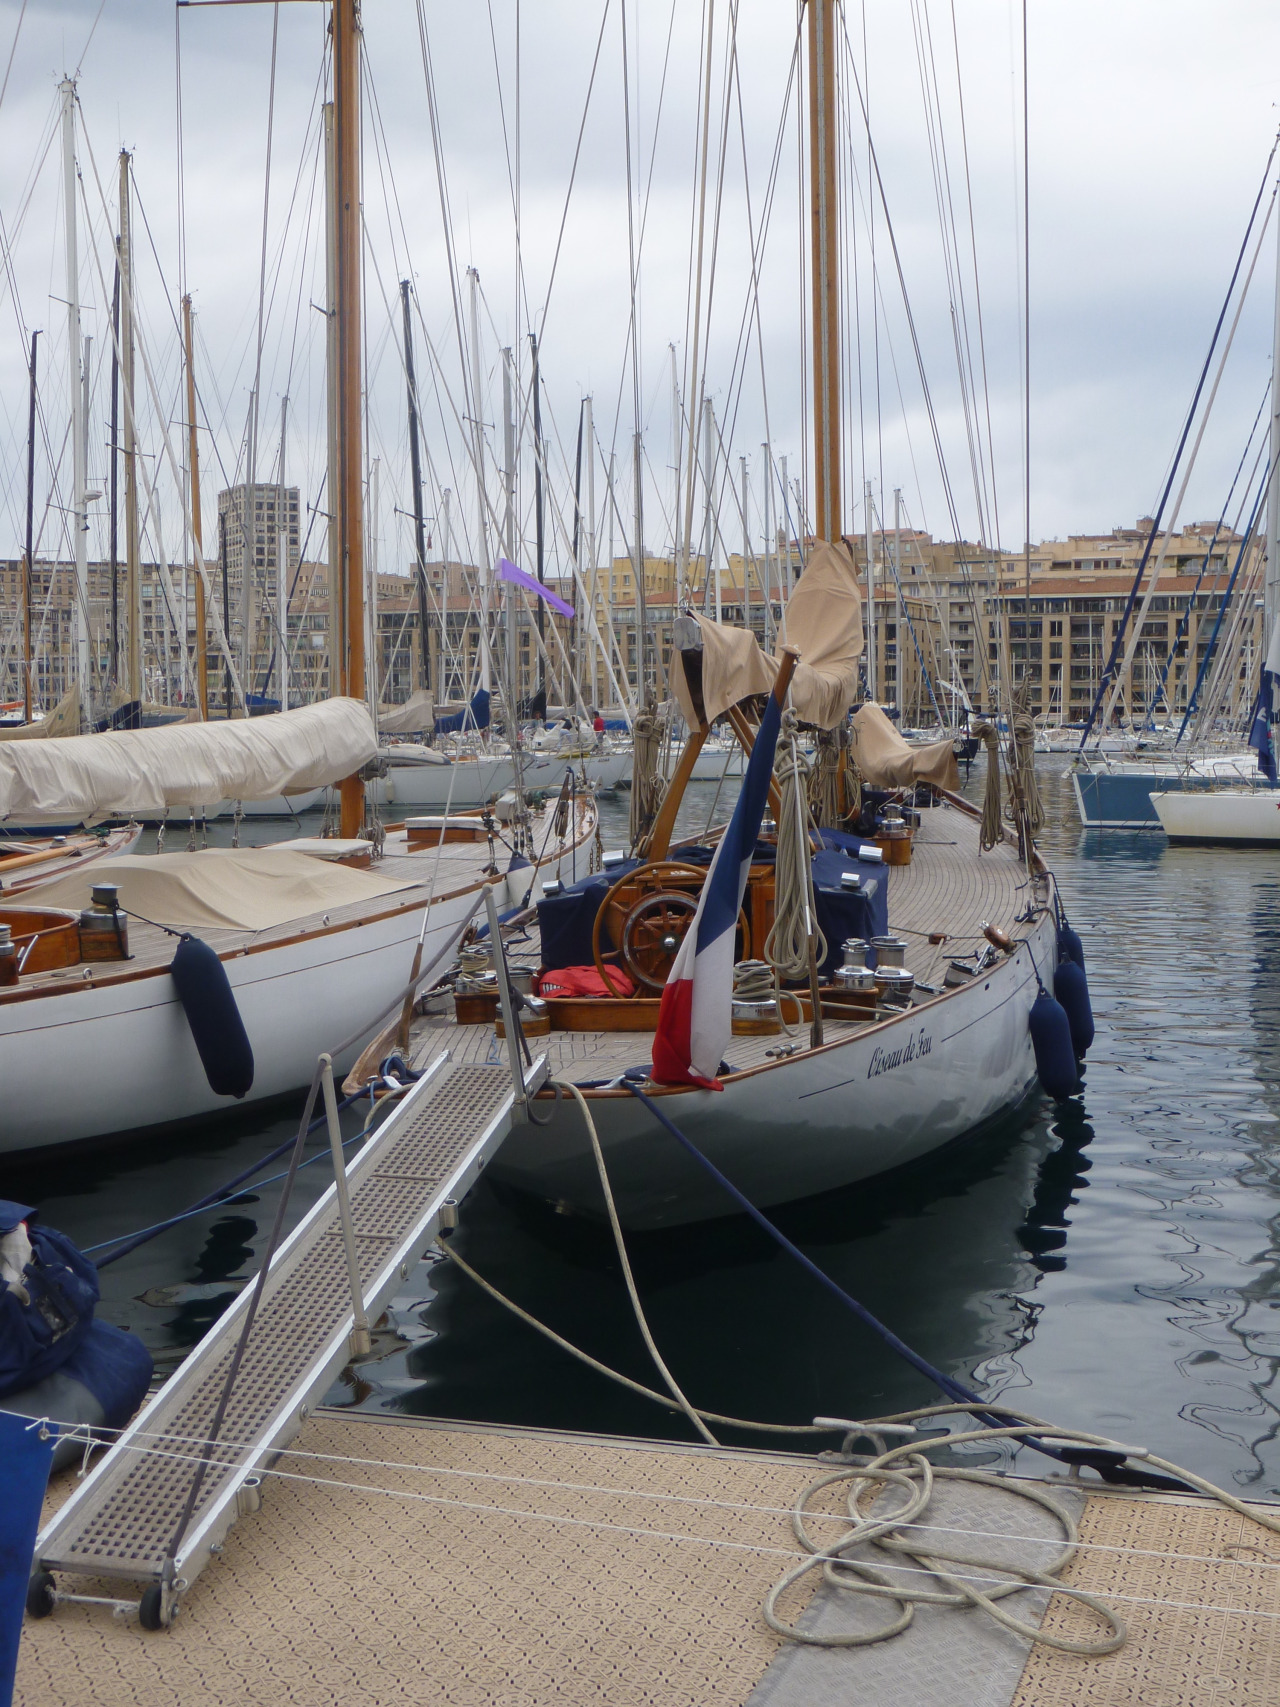 DAY 6  Catching a glimpse of the boats who have just participated in the Calanques Classique.